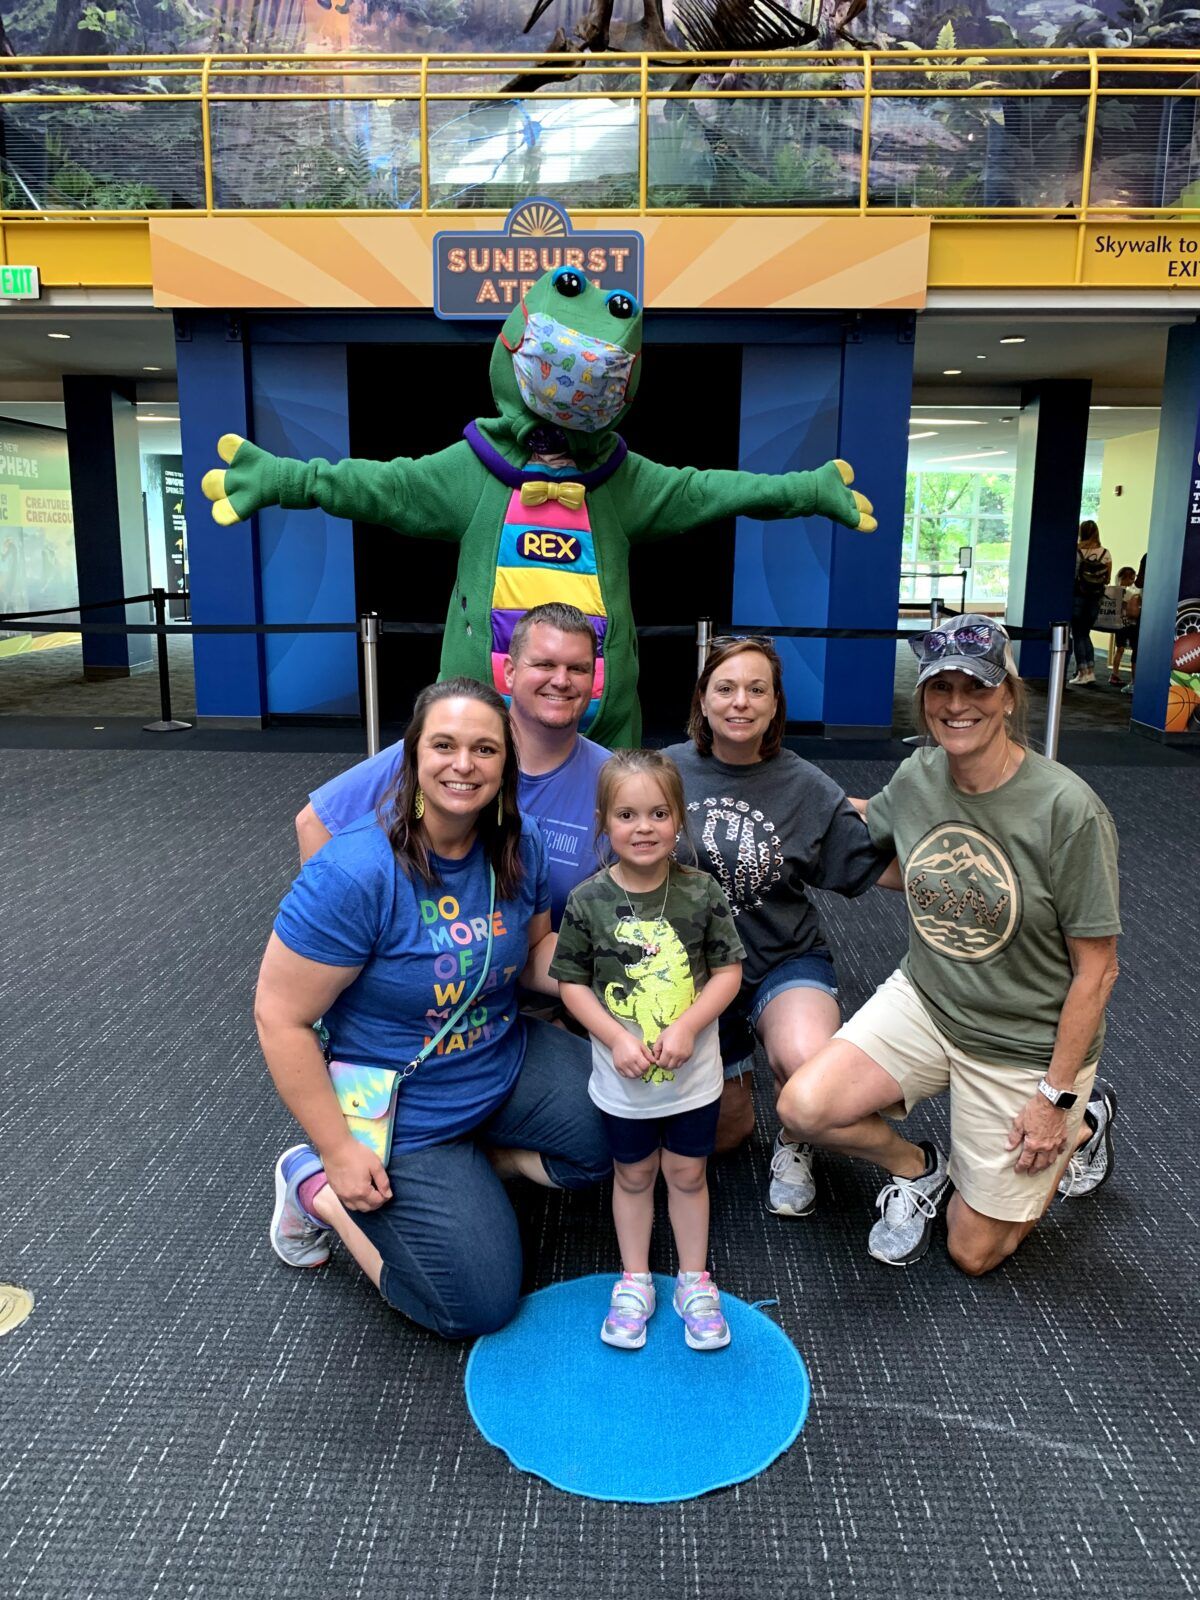 Road Trip Day 4: The Indianapolis Children's Museum